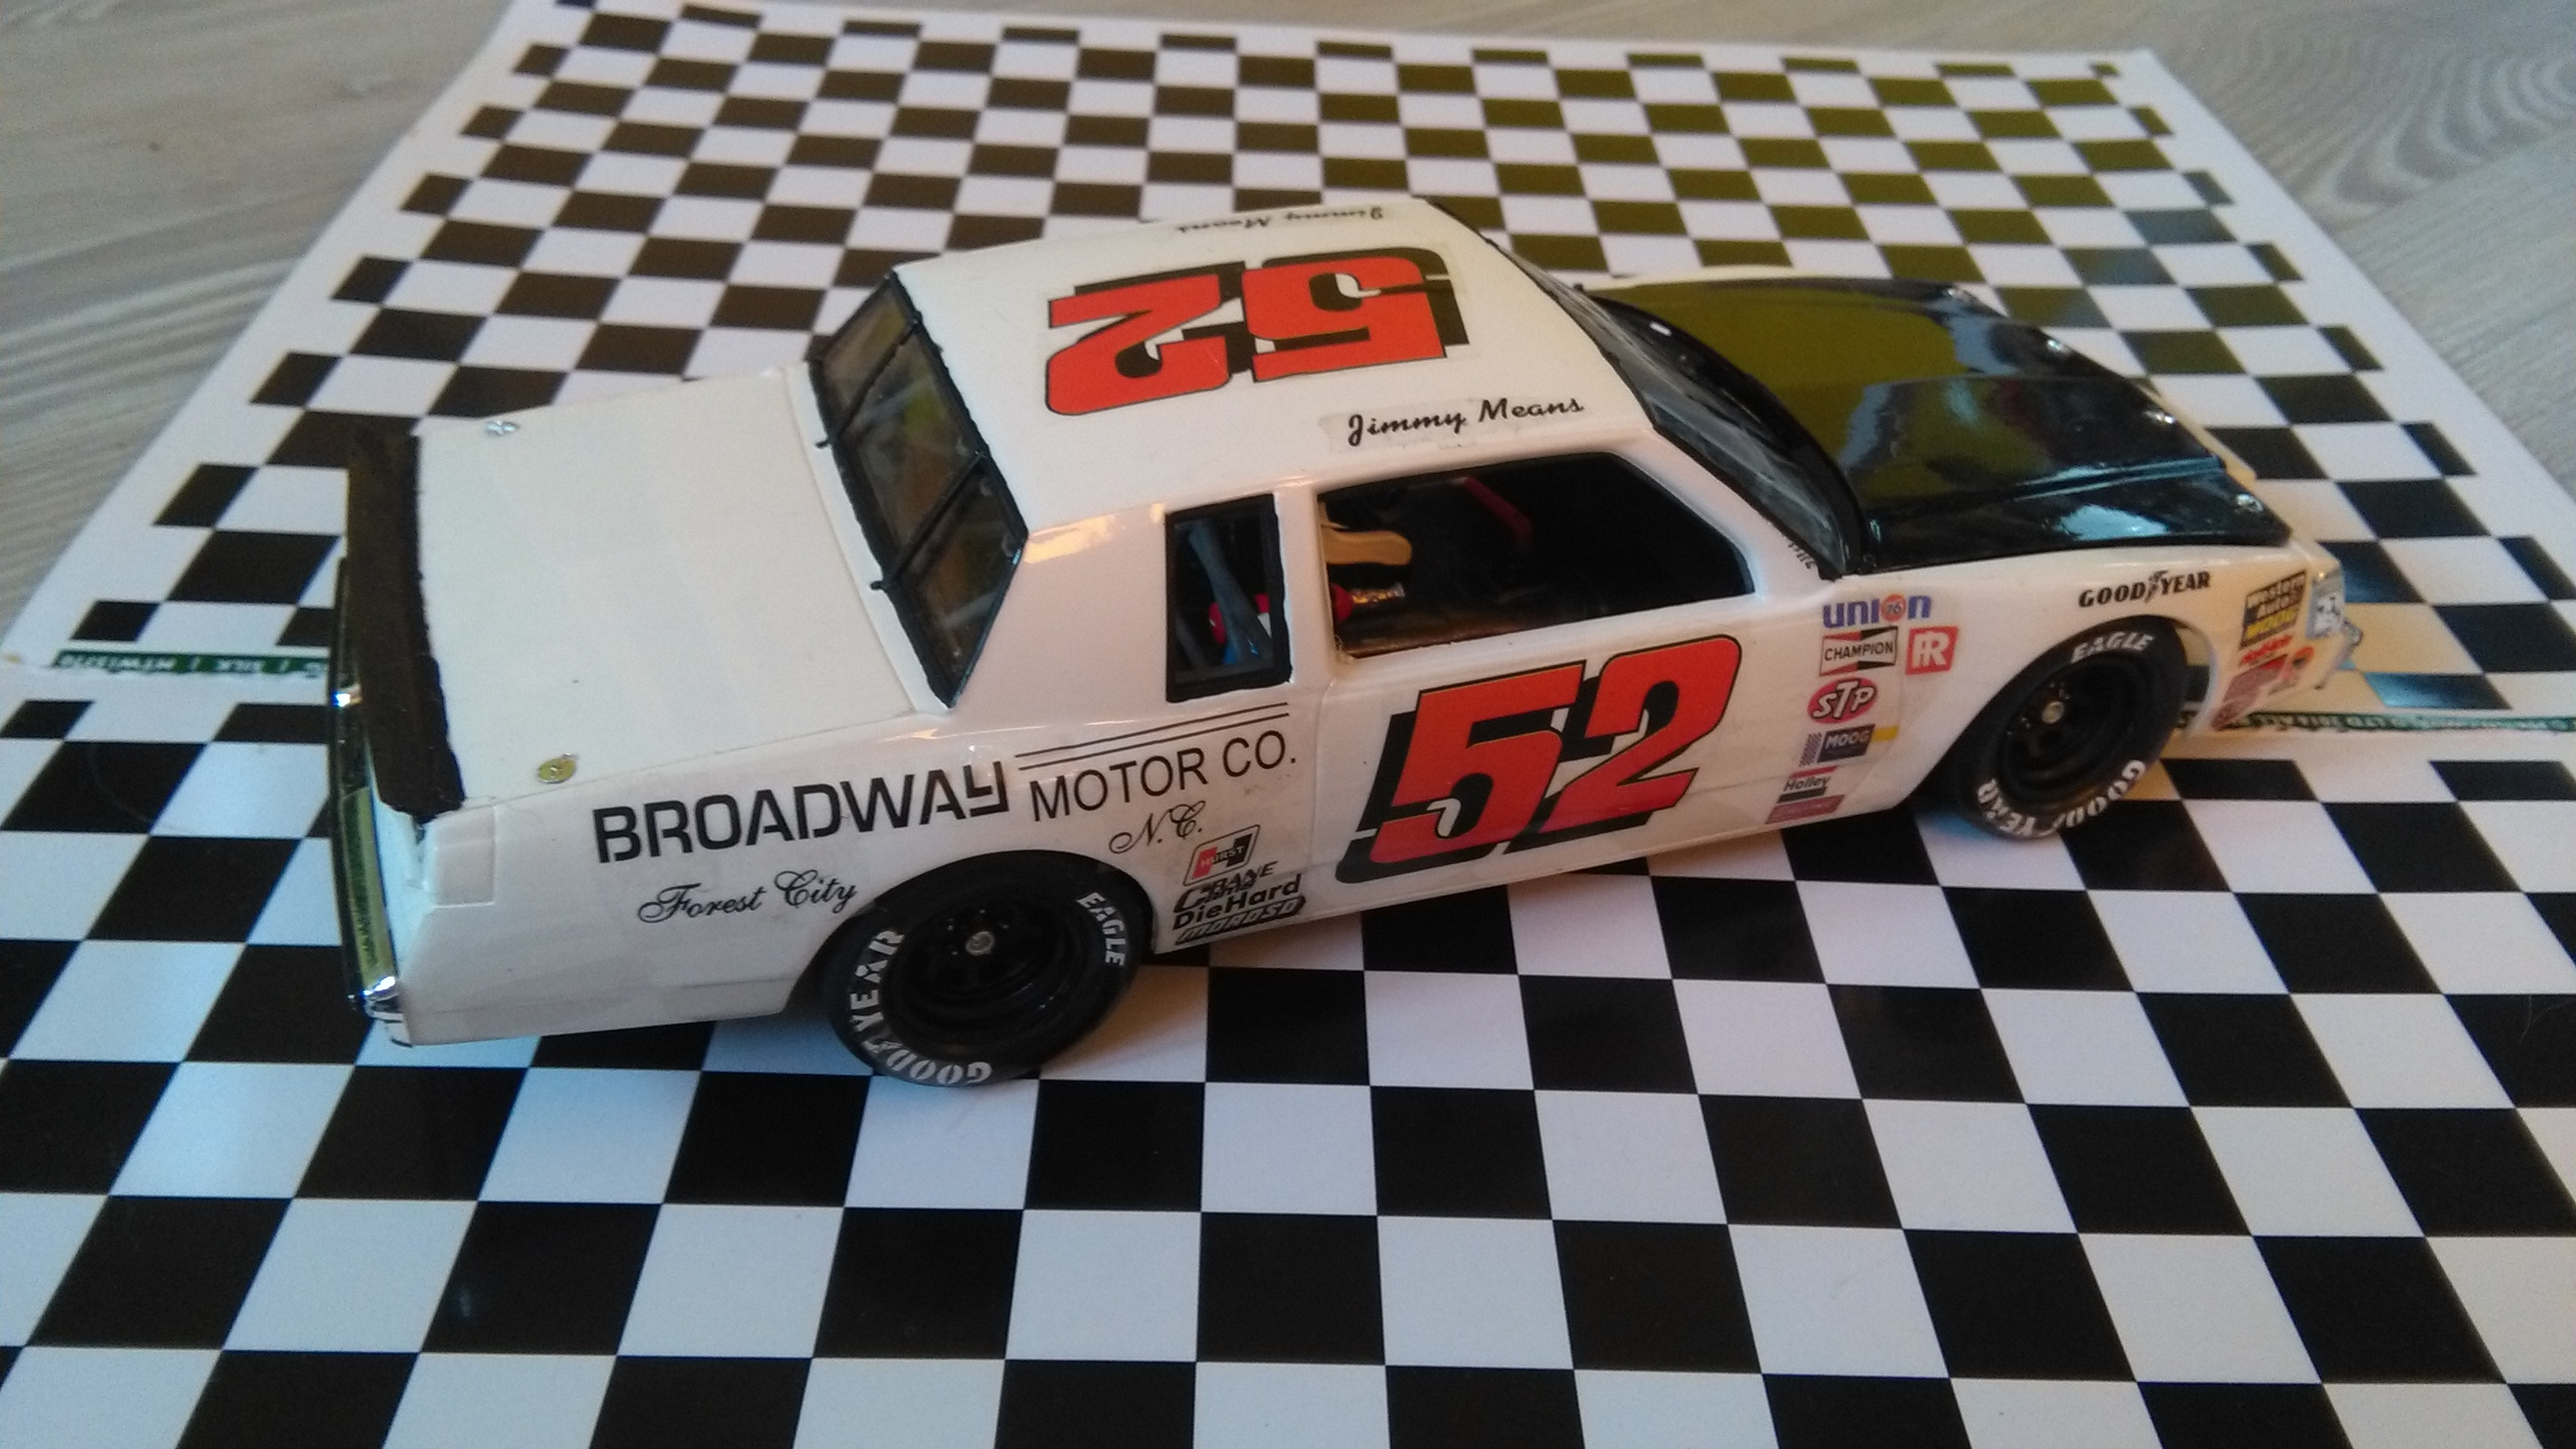 Buick Regal 1982 #52 Jimmy Means Broadway motor  337408IMG20170216082934